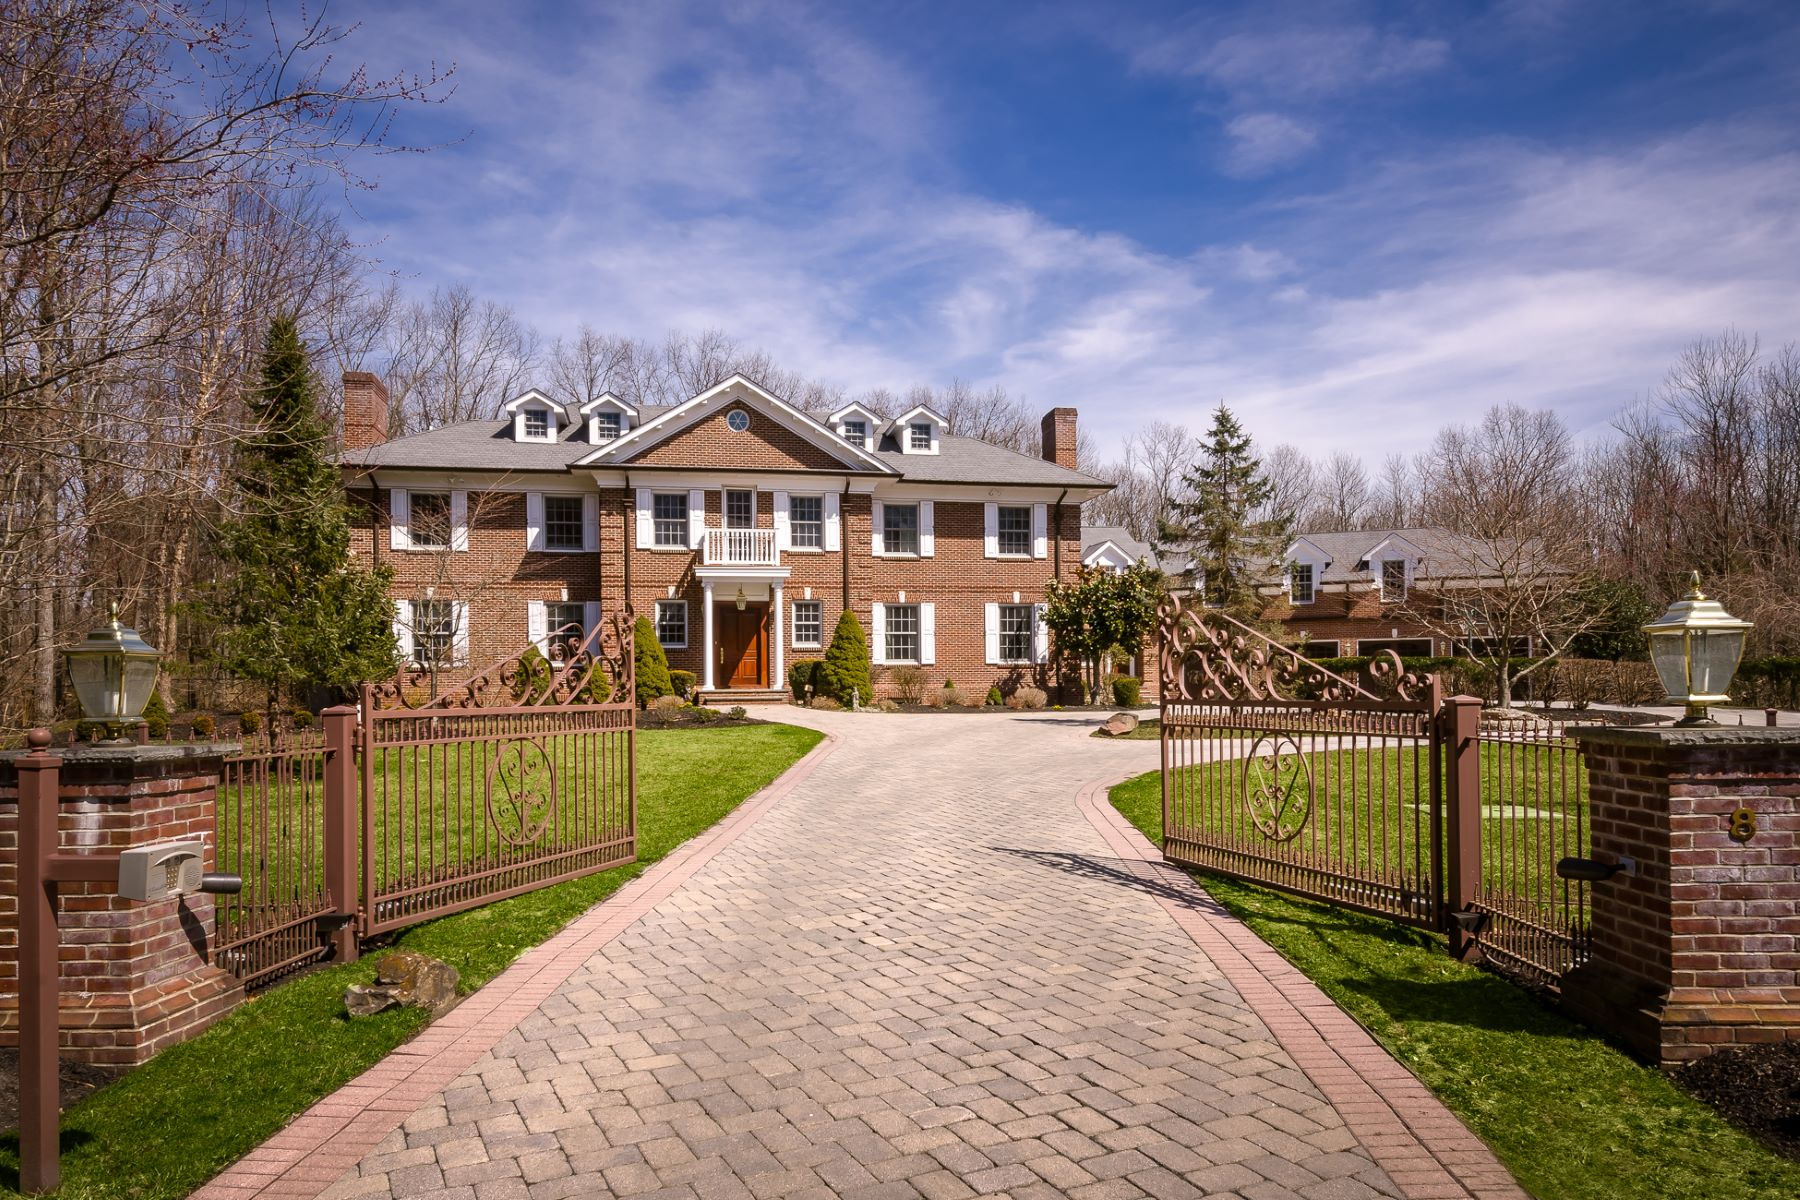 Additional photo for property listing at Stonybrook Manor: Once-in-a-Lifetime Magnificence 8 Players Lane, Princeton, Νιου Τζερσεϋ 08540 Ηνωμένες Πολιτείες